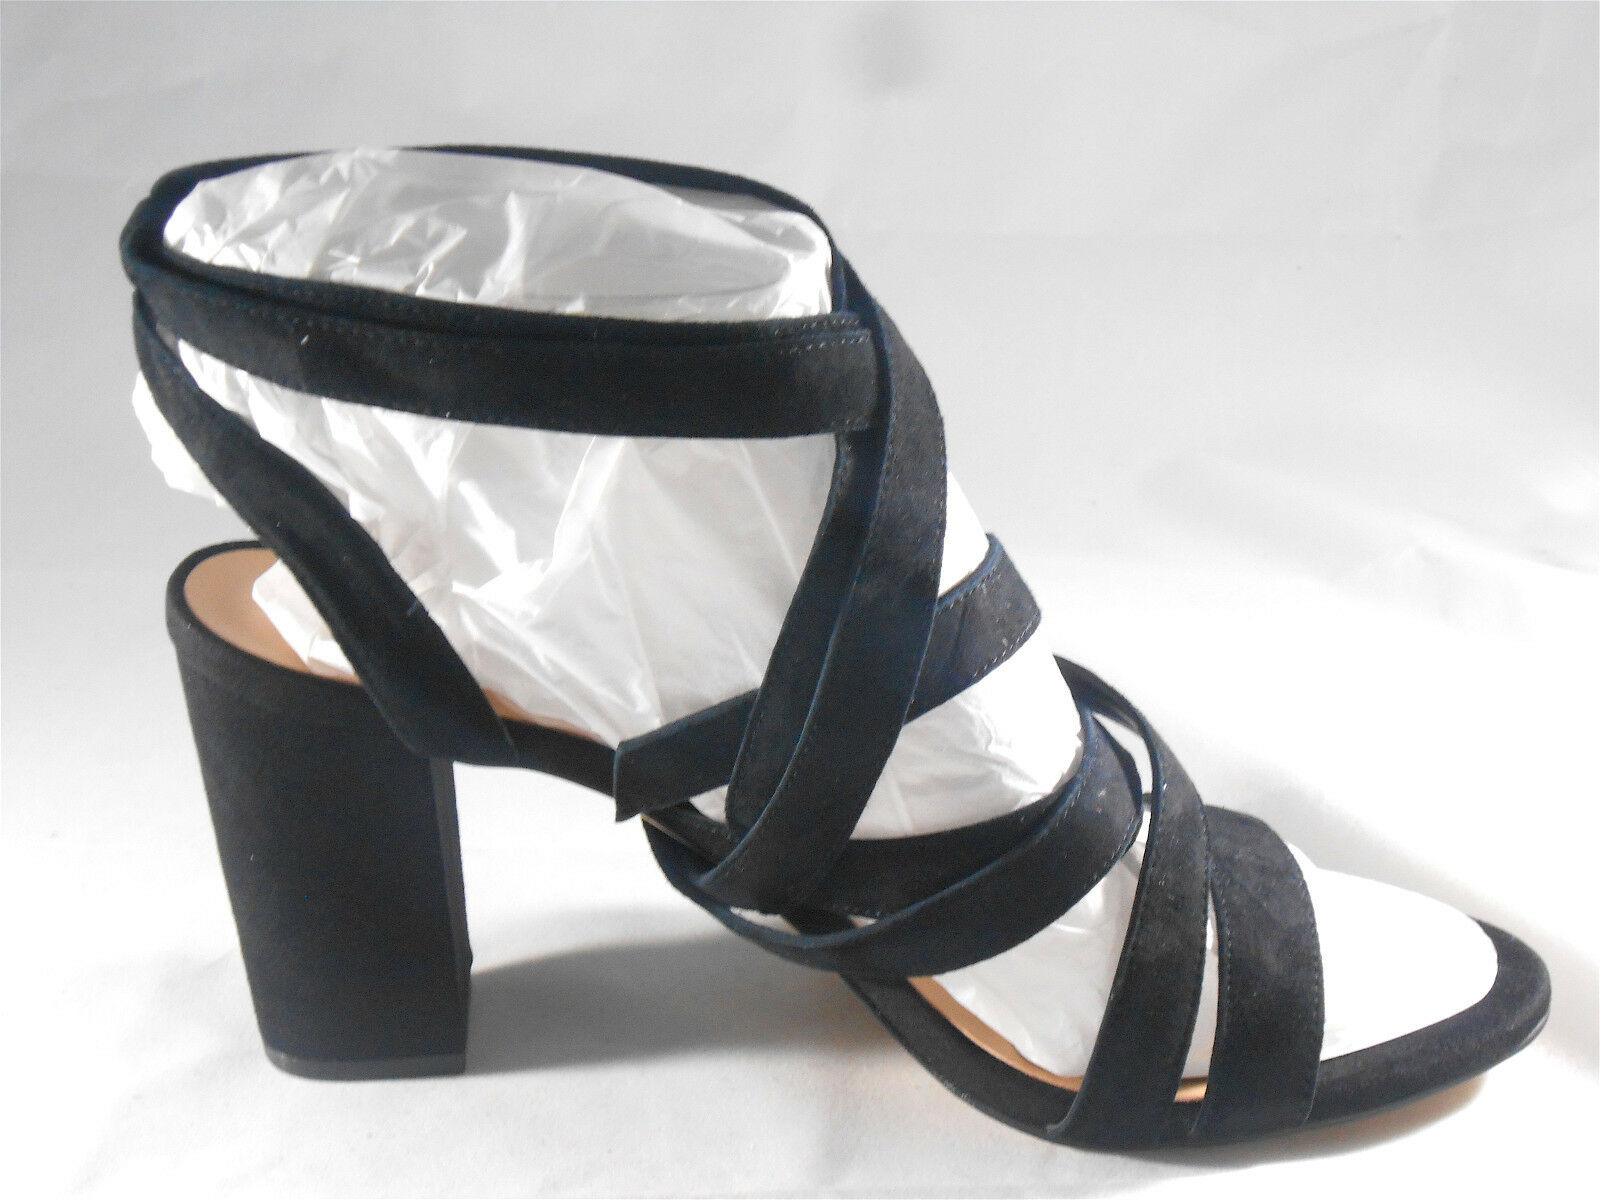 INC INTERNATIONAL CONCEPTS (KAILEY (KAILEY (KAILEY BLACK SUEDE SANDAL) WOMENS SIZE 10 NEW 4118de